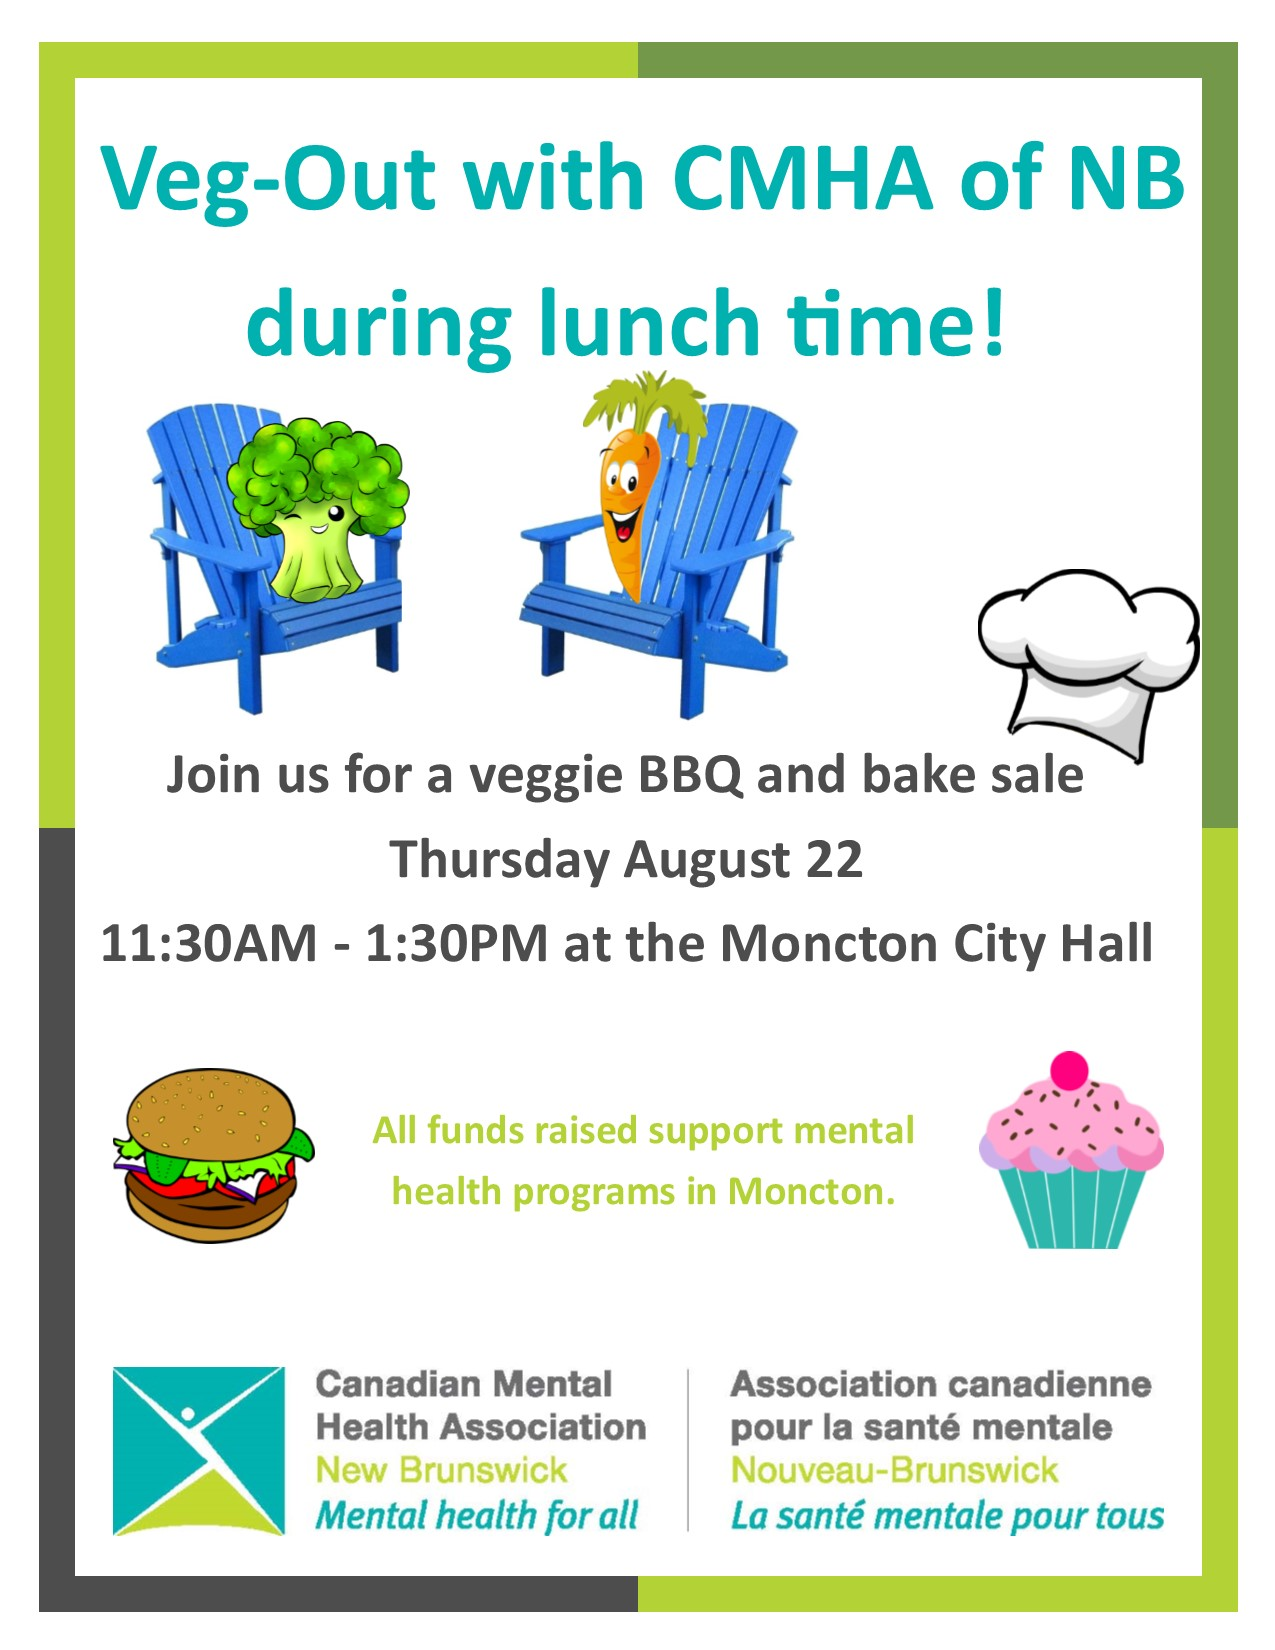 Veg-Out BBQ and Bake Sale (Moncton)